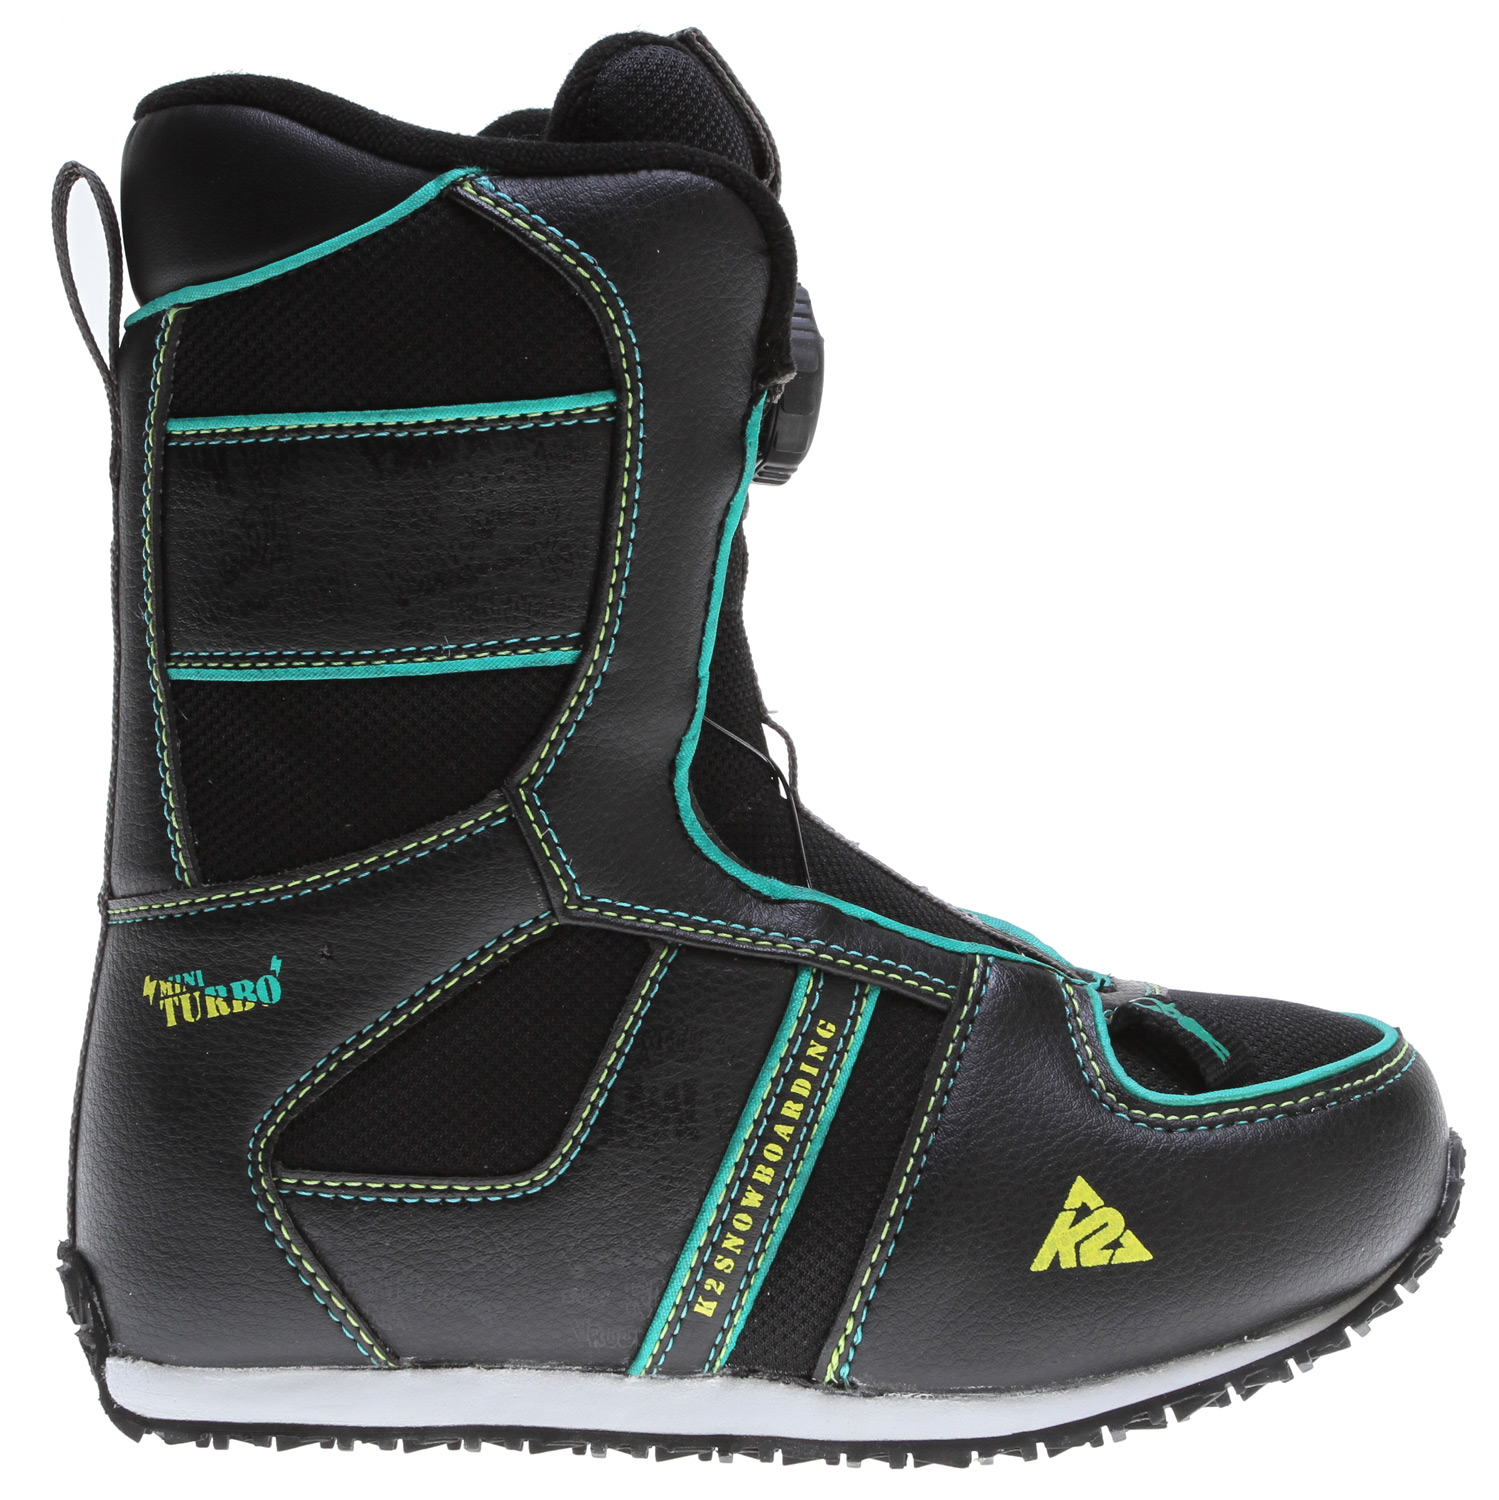 Snowboard Keeping kids warm, comfy and secure is the focus of these micro shredder boots. Boa is a must at this age and grows with you footbeds make sure you get two season in before advancing to another pair.Key Features of the K2 Mini Turbo Snowboard Boots: Flex: 1 LACING SYSTEM: Boa FOOTBED: EVA Insole DETAILS: Heel & Tongue Pull for easy entry - $48.95